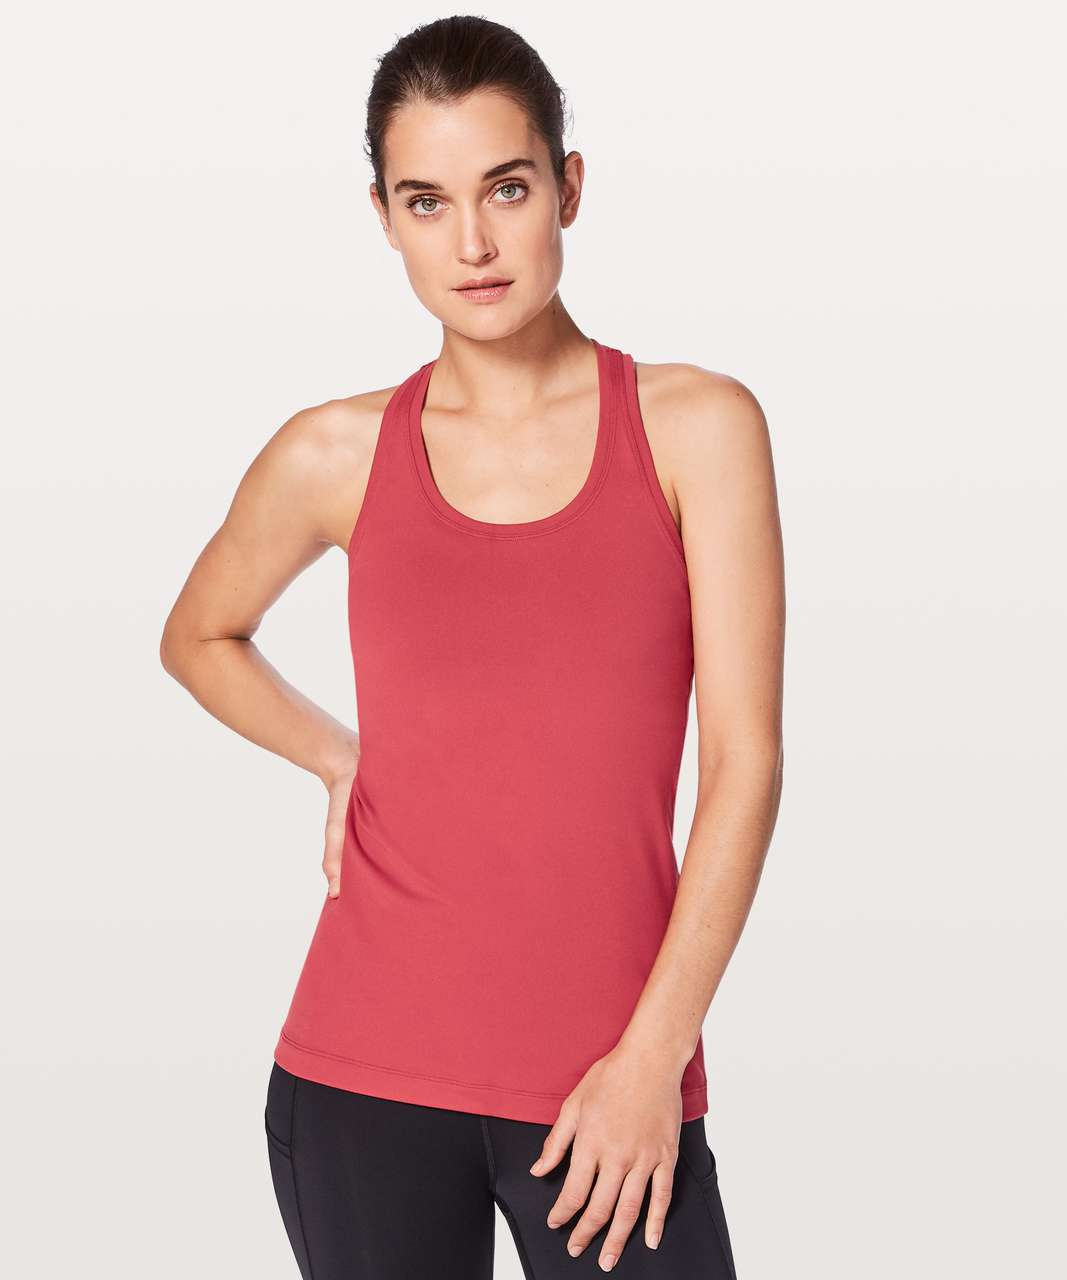 Lululemon Cool Racerback II - Persian Red